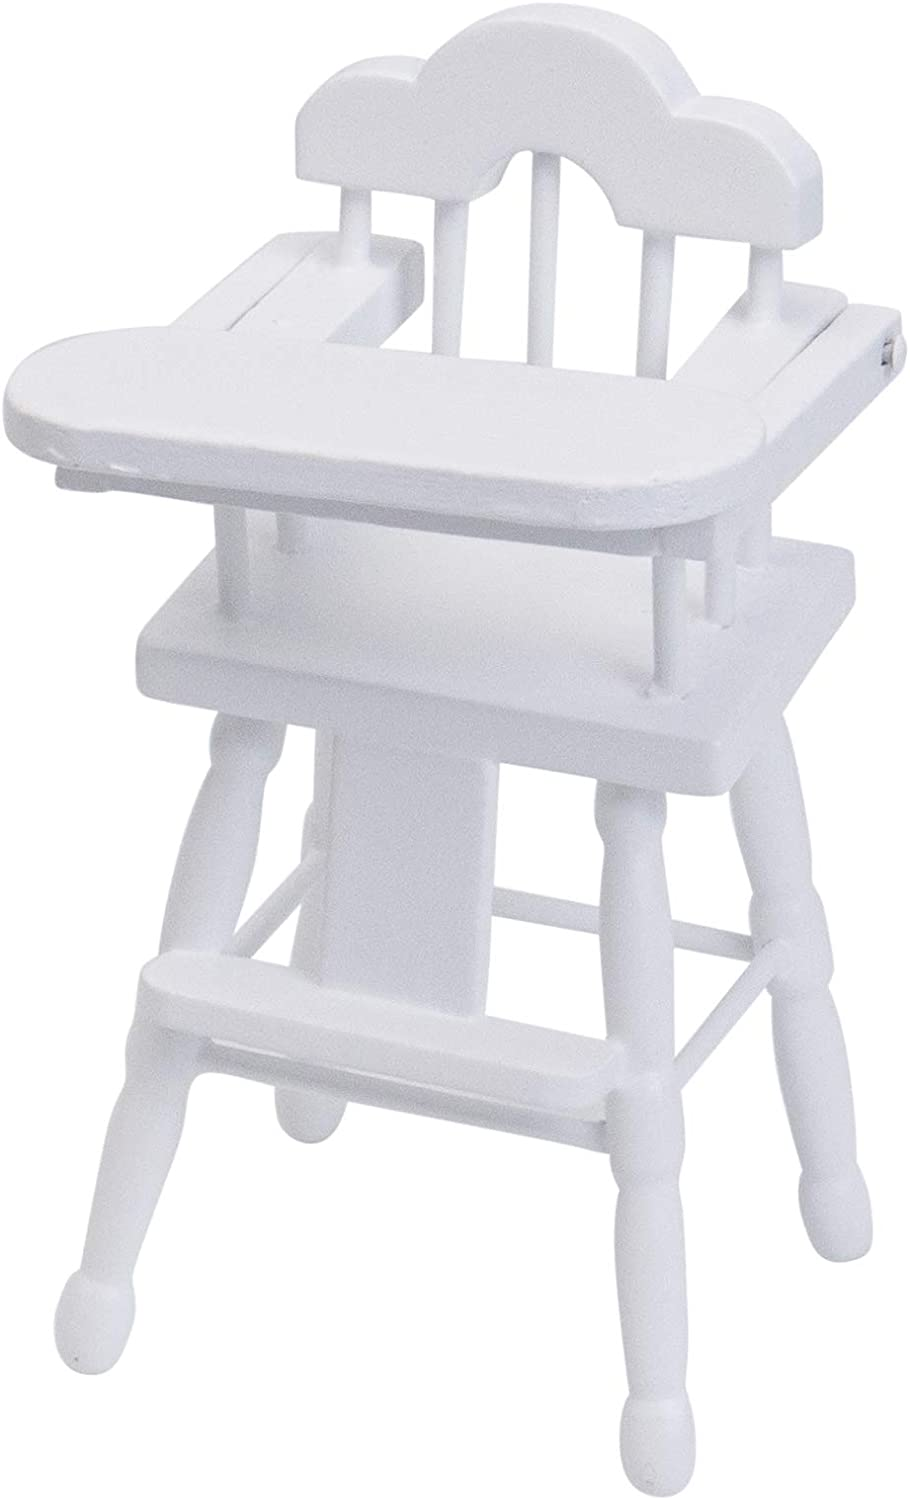 AUEAR, 1 12 Scale Miniature High Chair Doll Wooden Table Chairs for Dollhouse White